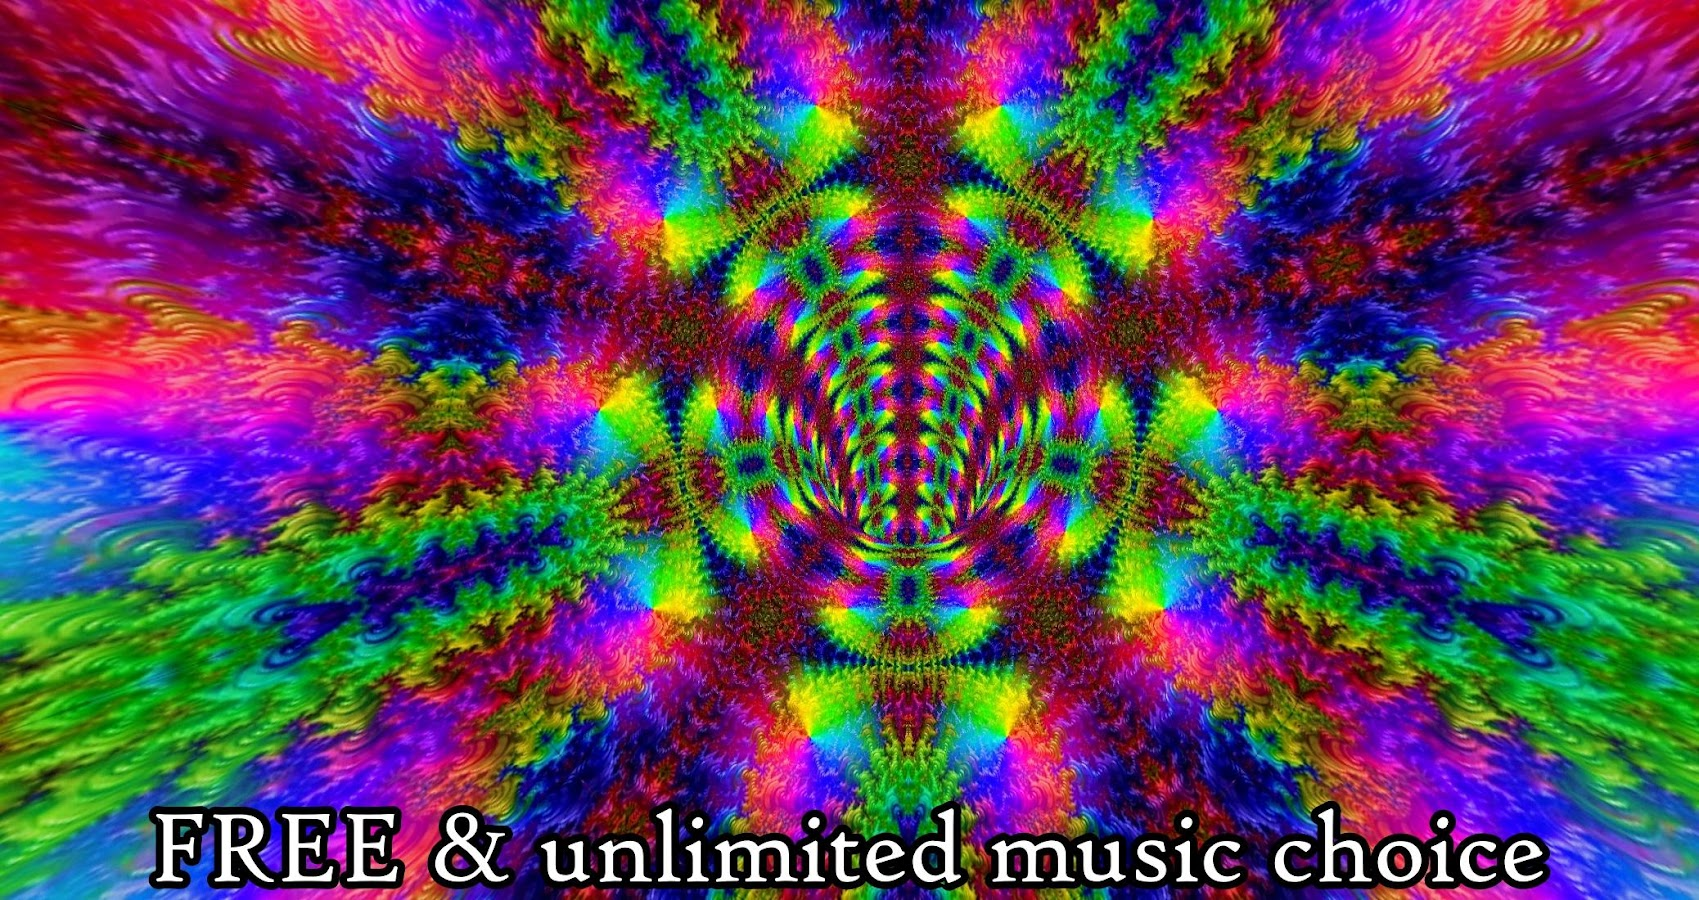 Astral 3D FX Music Visualizer - Fractal Eye Candy 137 APK Download